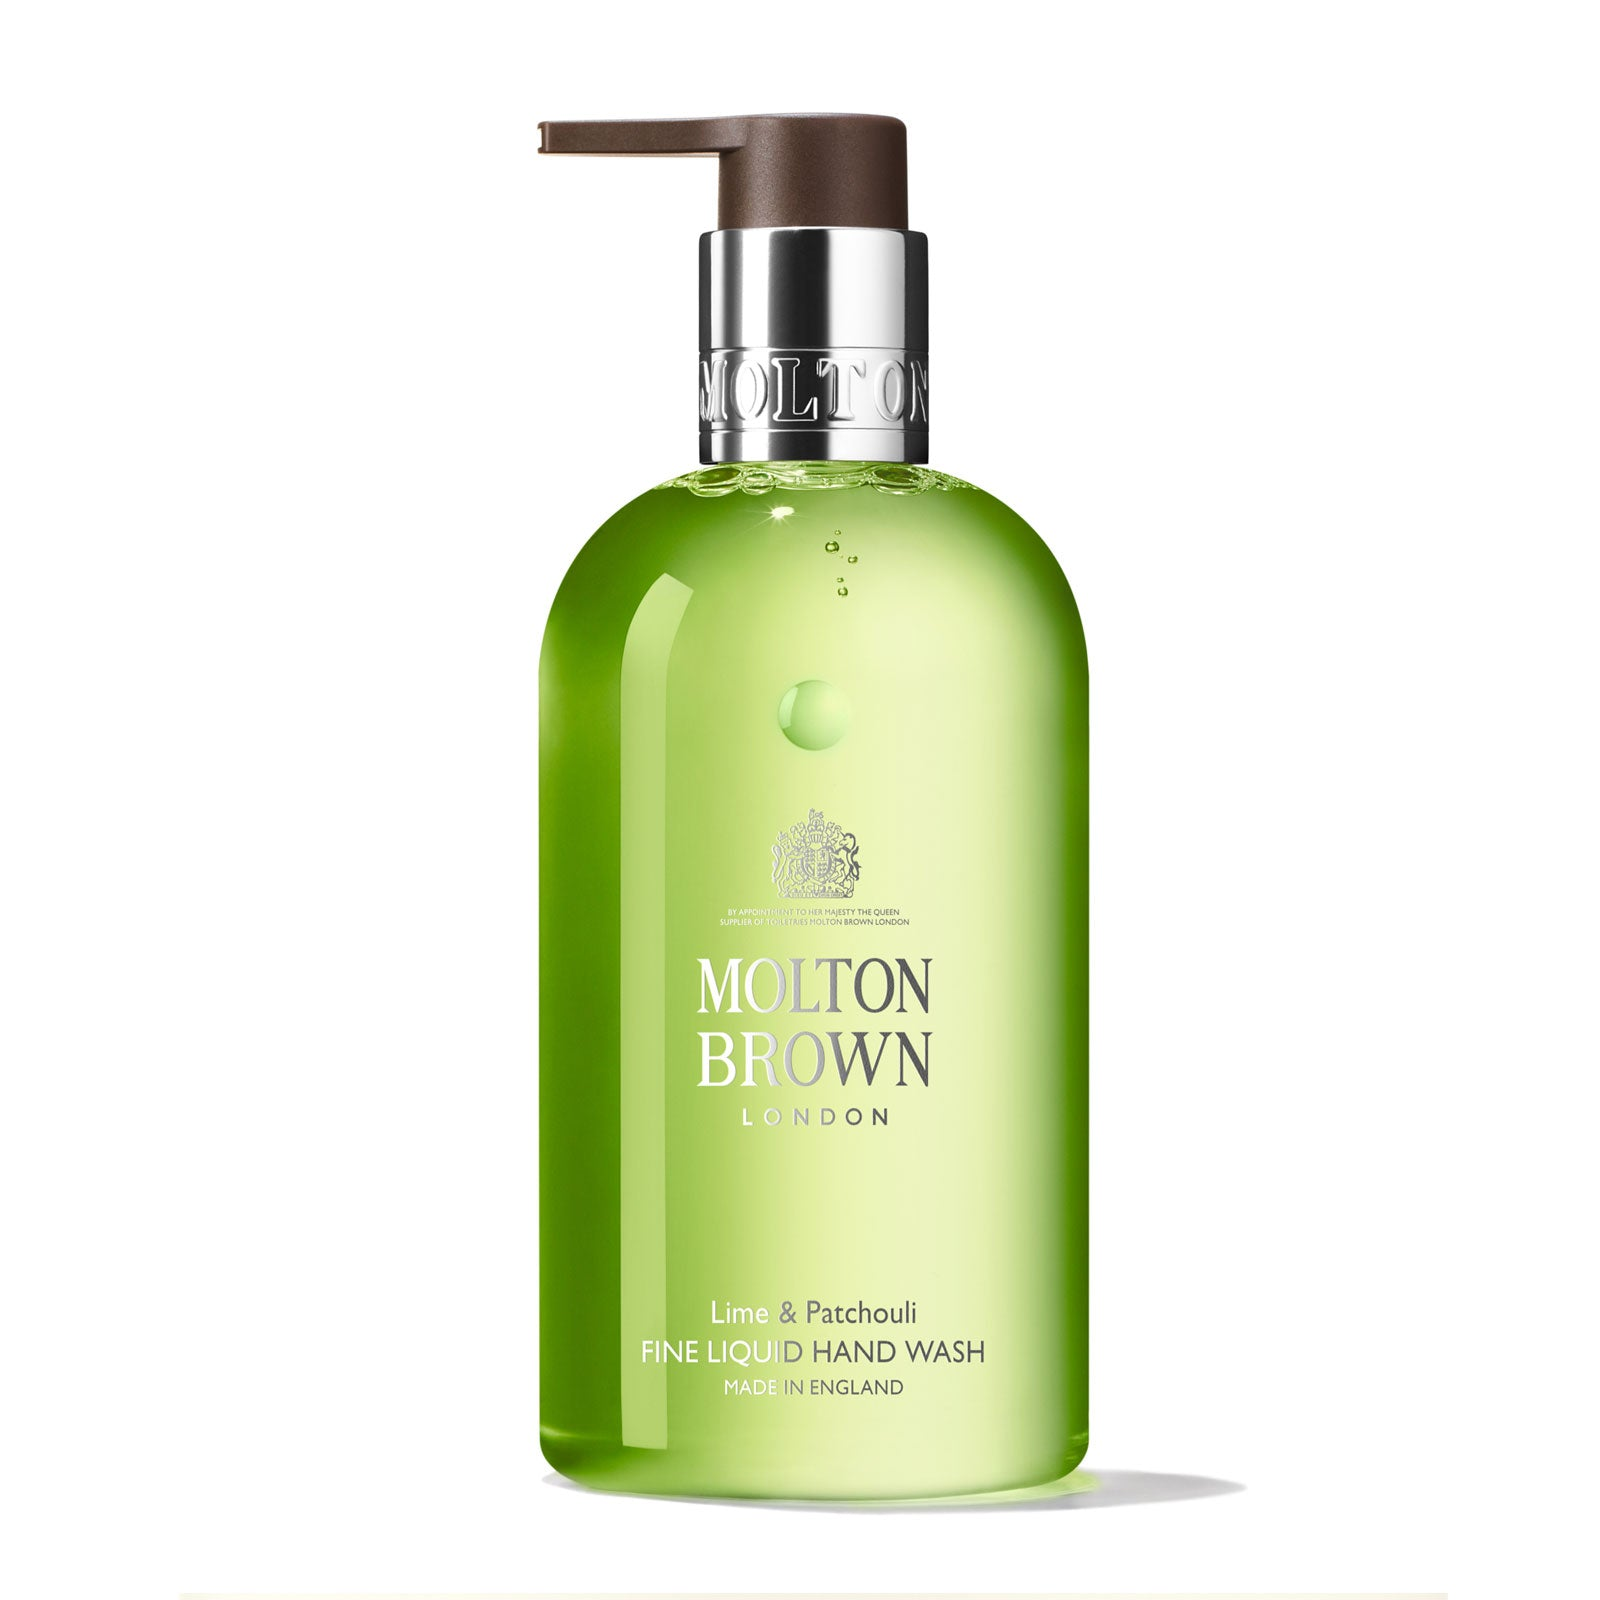 Molton Brown Lime & Patchouli Fine Liquid Hand Wash 300ml